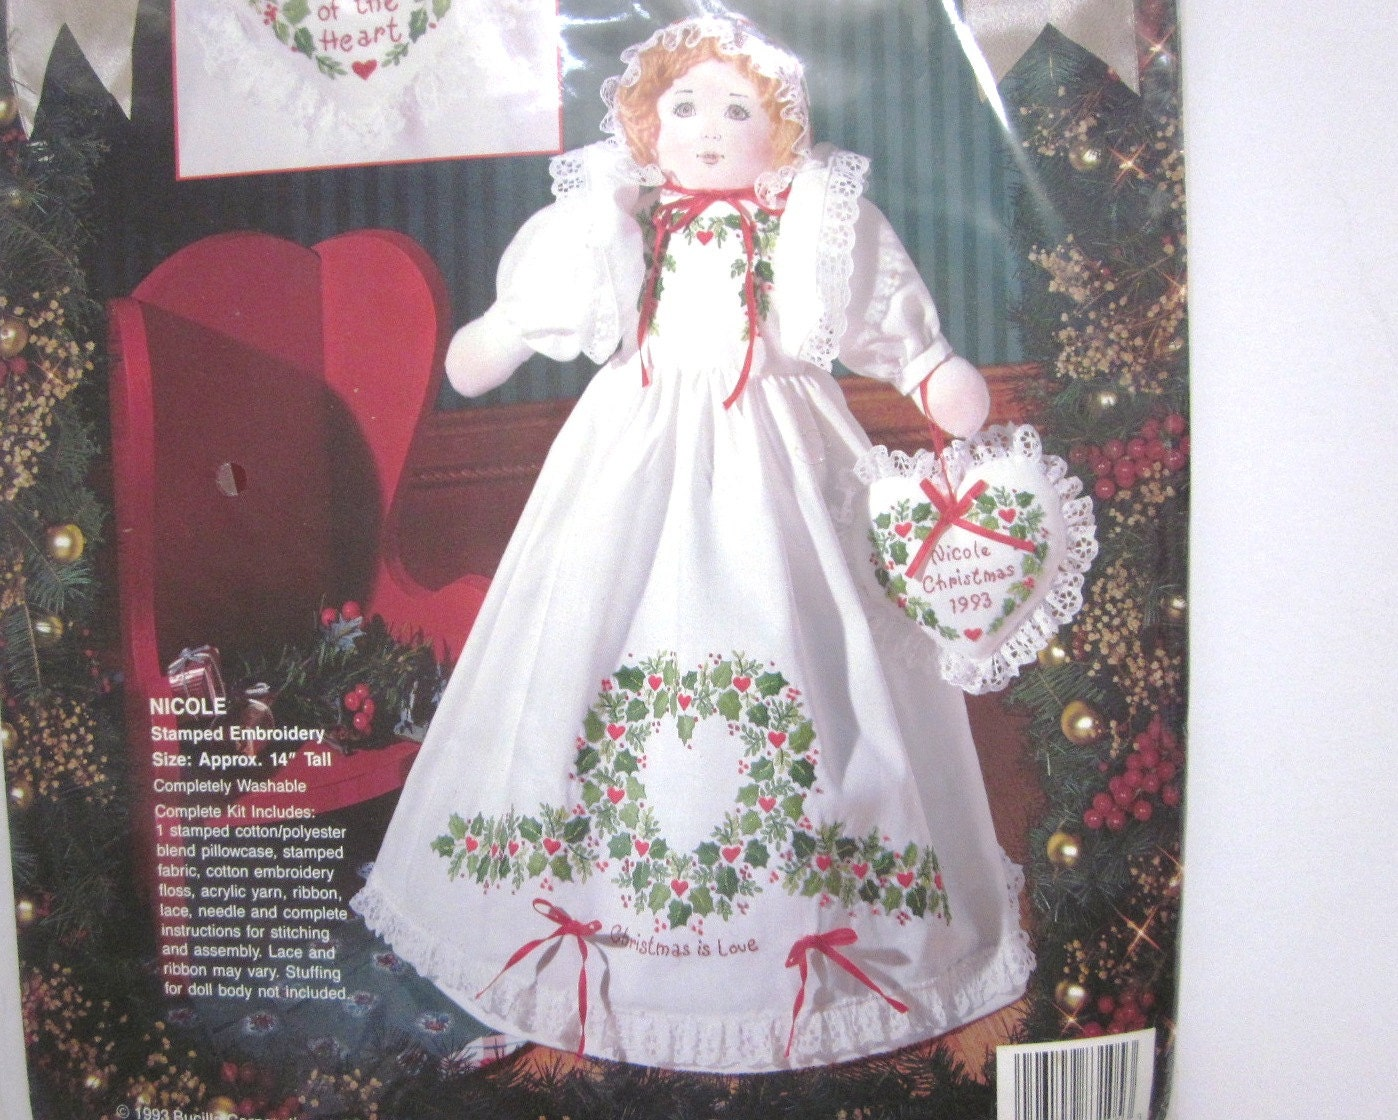 Nicole stamped embroidery doll kit bucilla nib